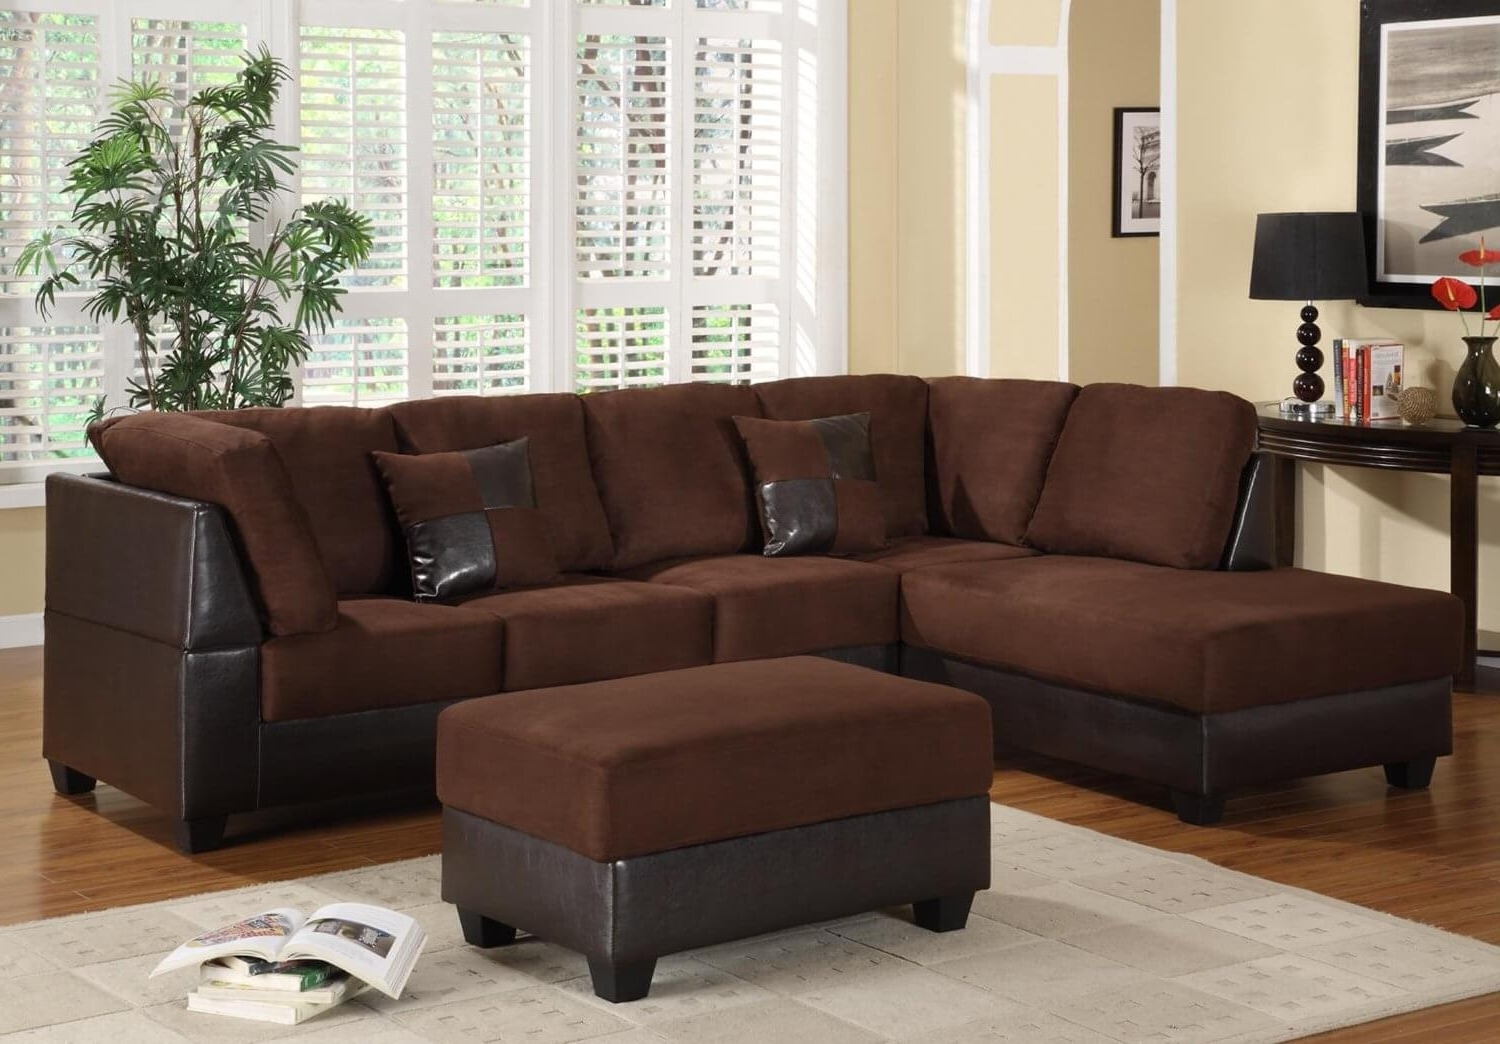 Sectional Sofas Under 200 Intended For Widely Used Sofa (View 13 of 20)